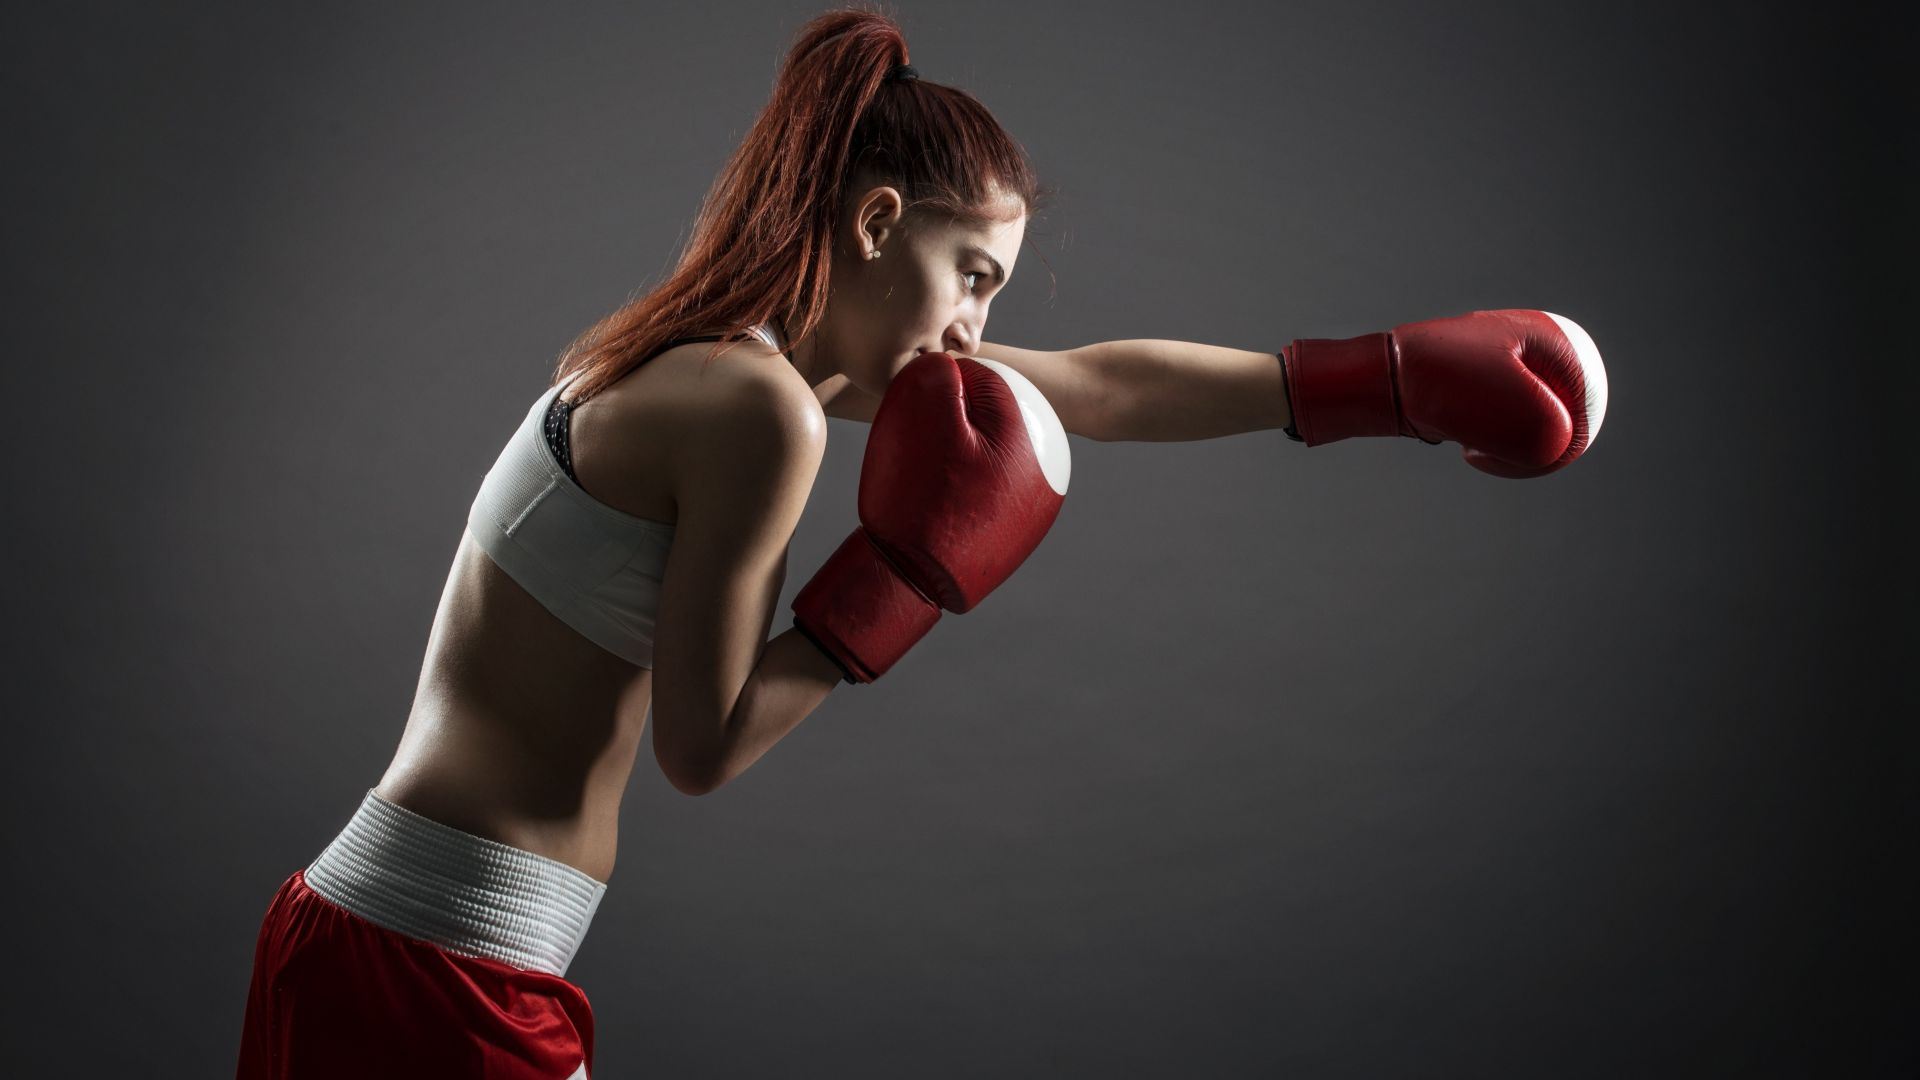 Boxing gloves, girl, boxing, 4K (horizontal)